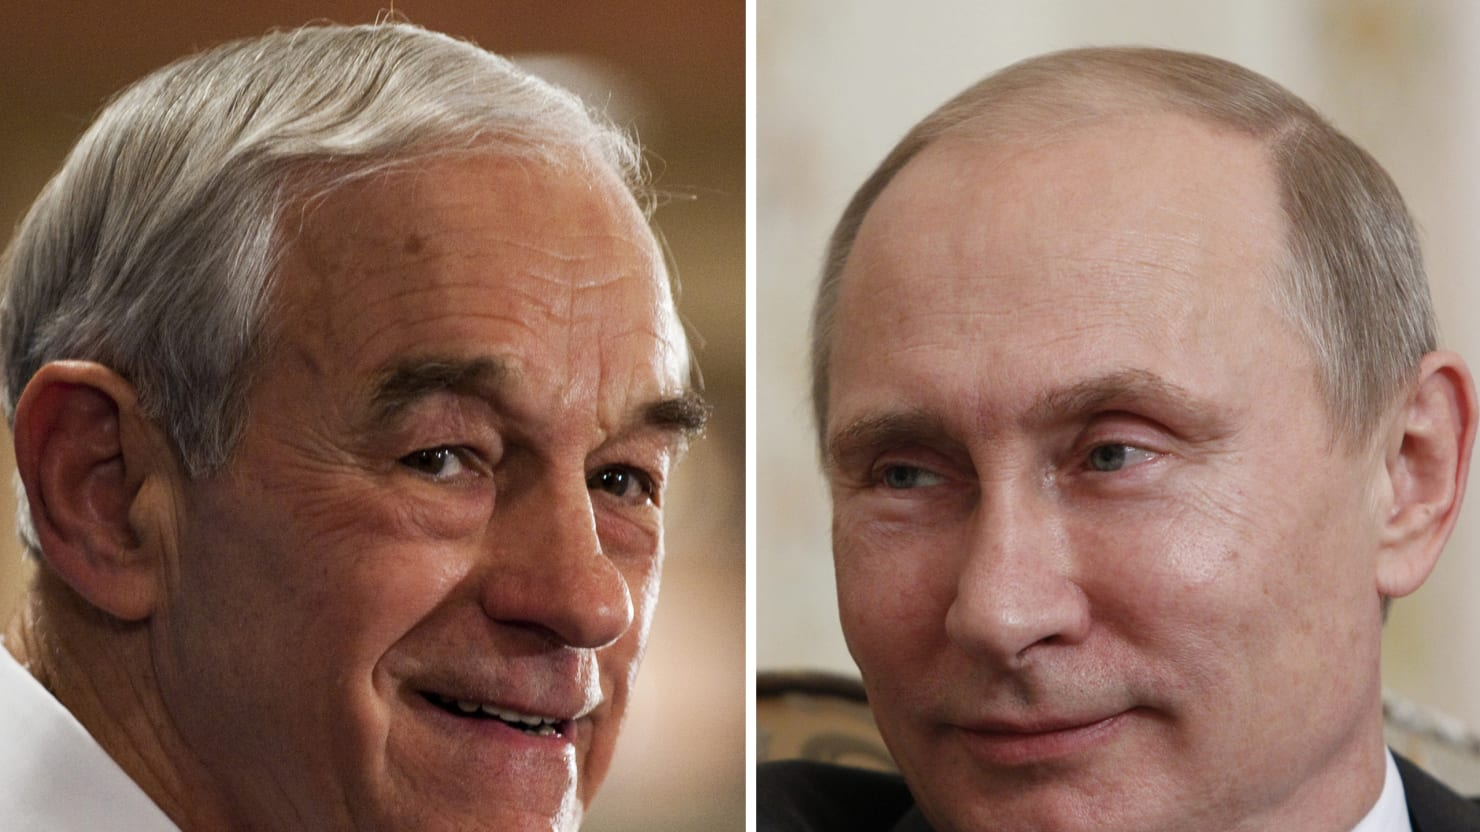 Ron Paul Is Supporting Russia's Illegal Occupation of Crimea